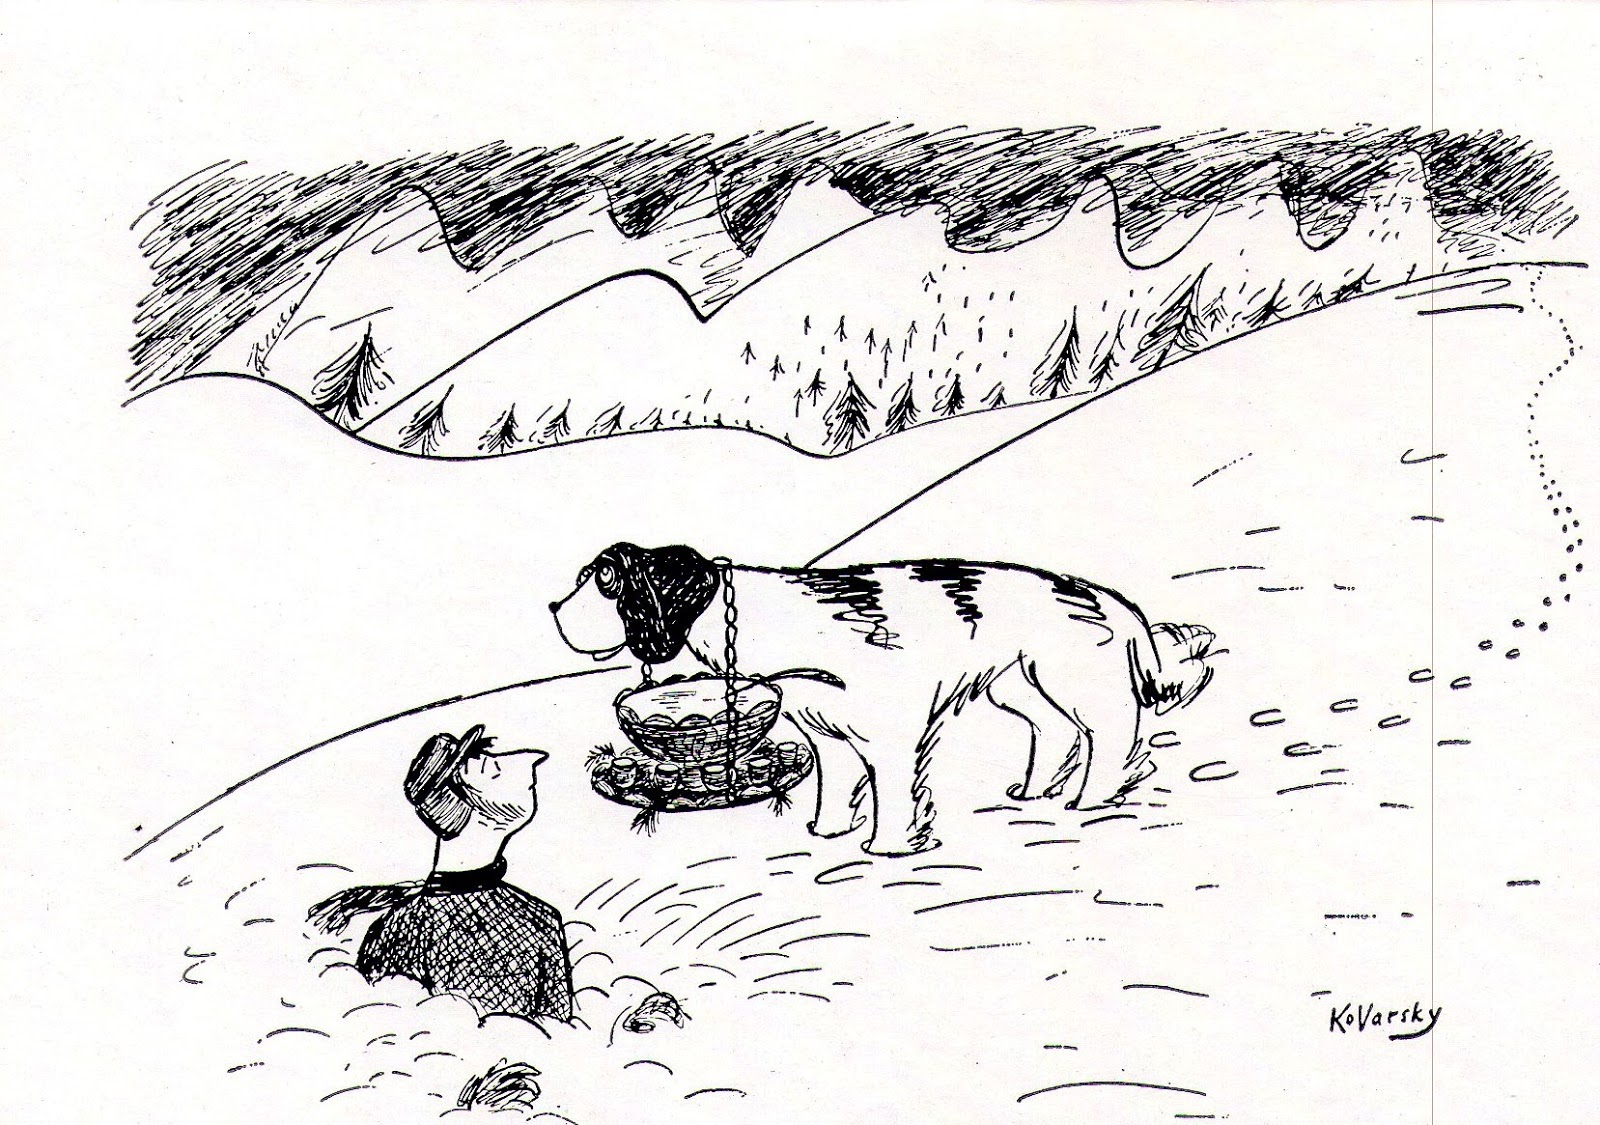 Mike lynch cartoons nyc anatol kovarsky new yorker gallery show at this was also a christmas greeting card for friends m4hsunfo